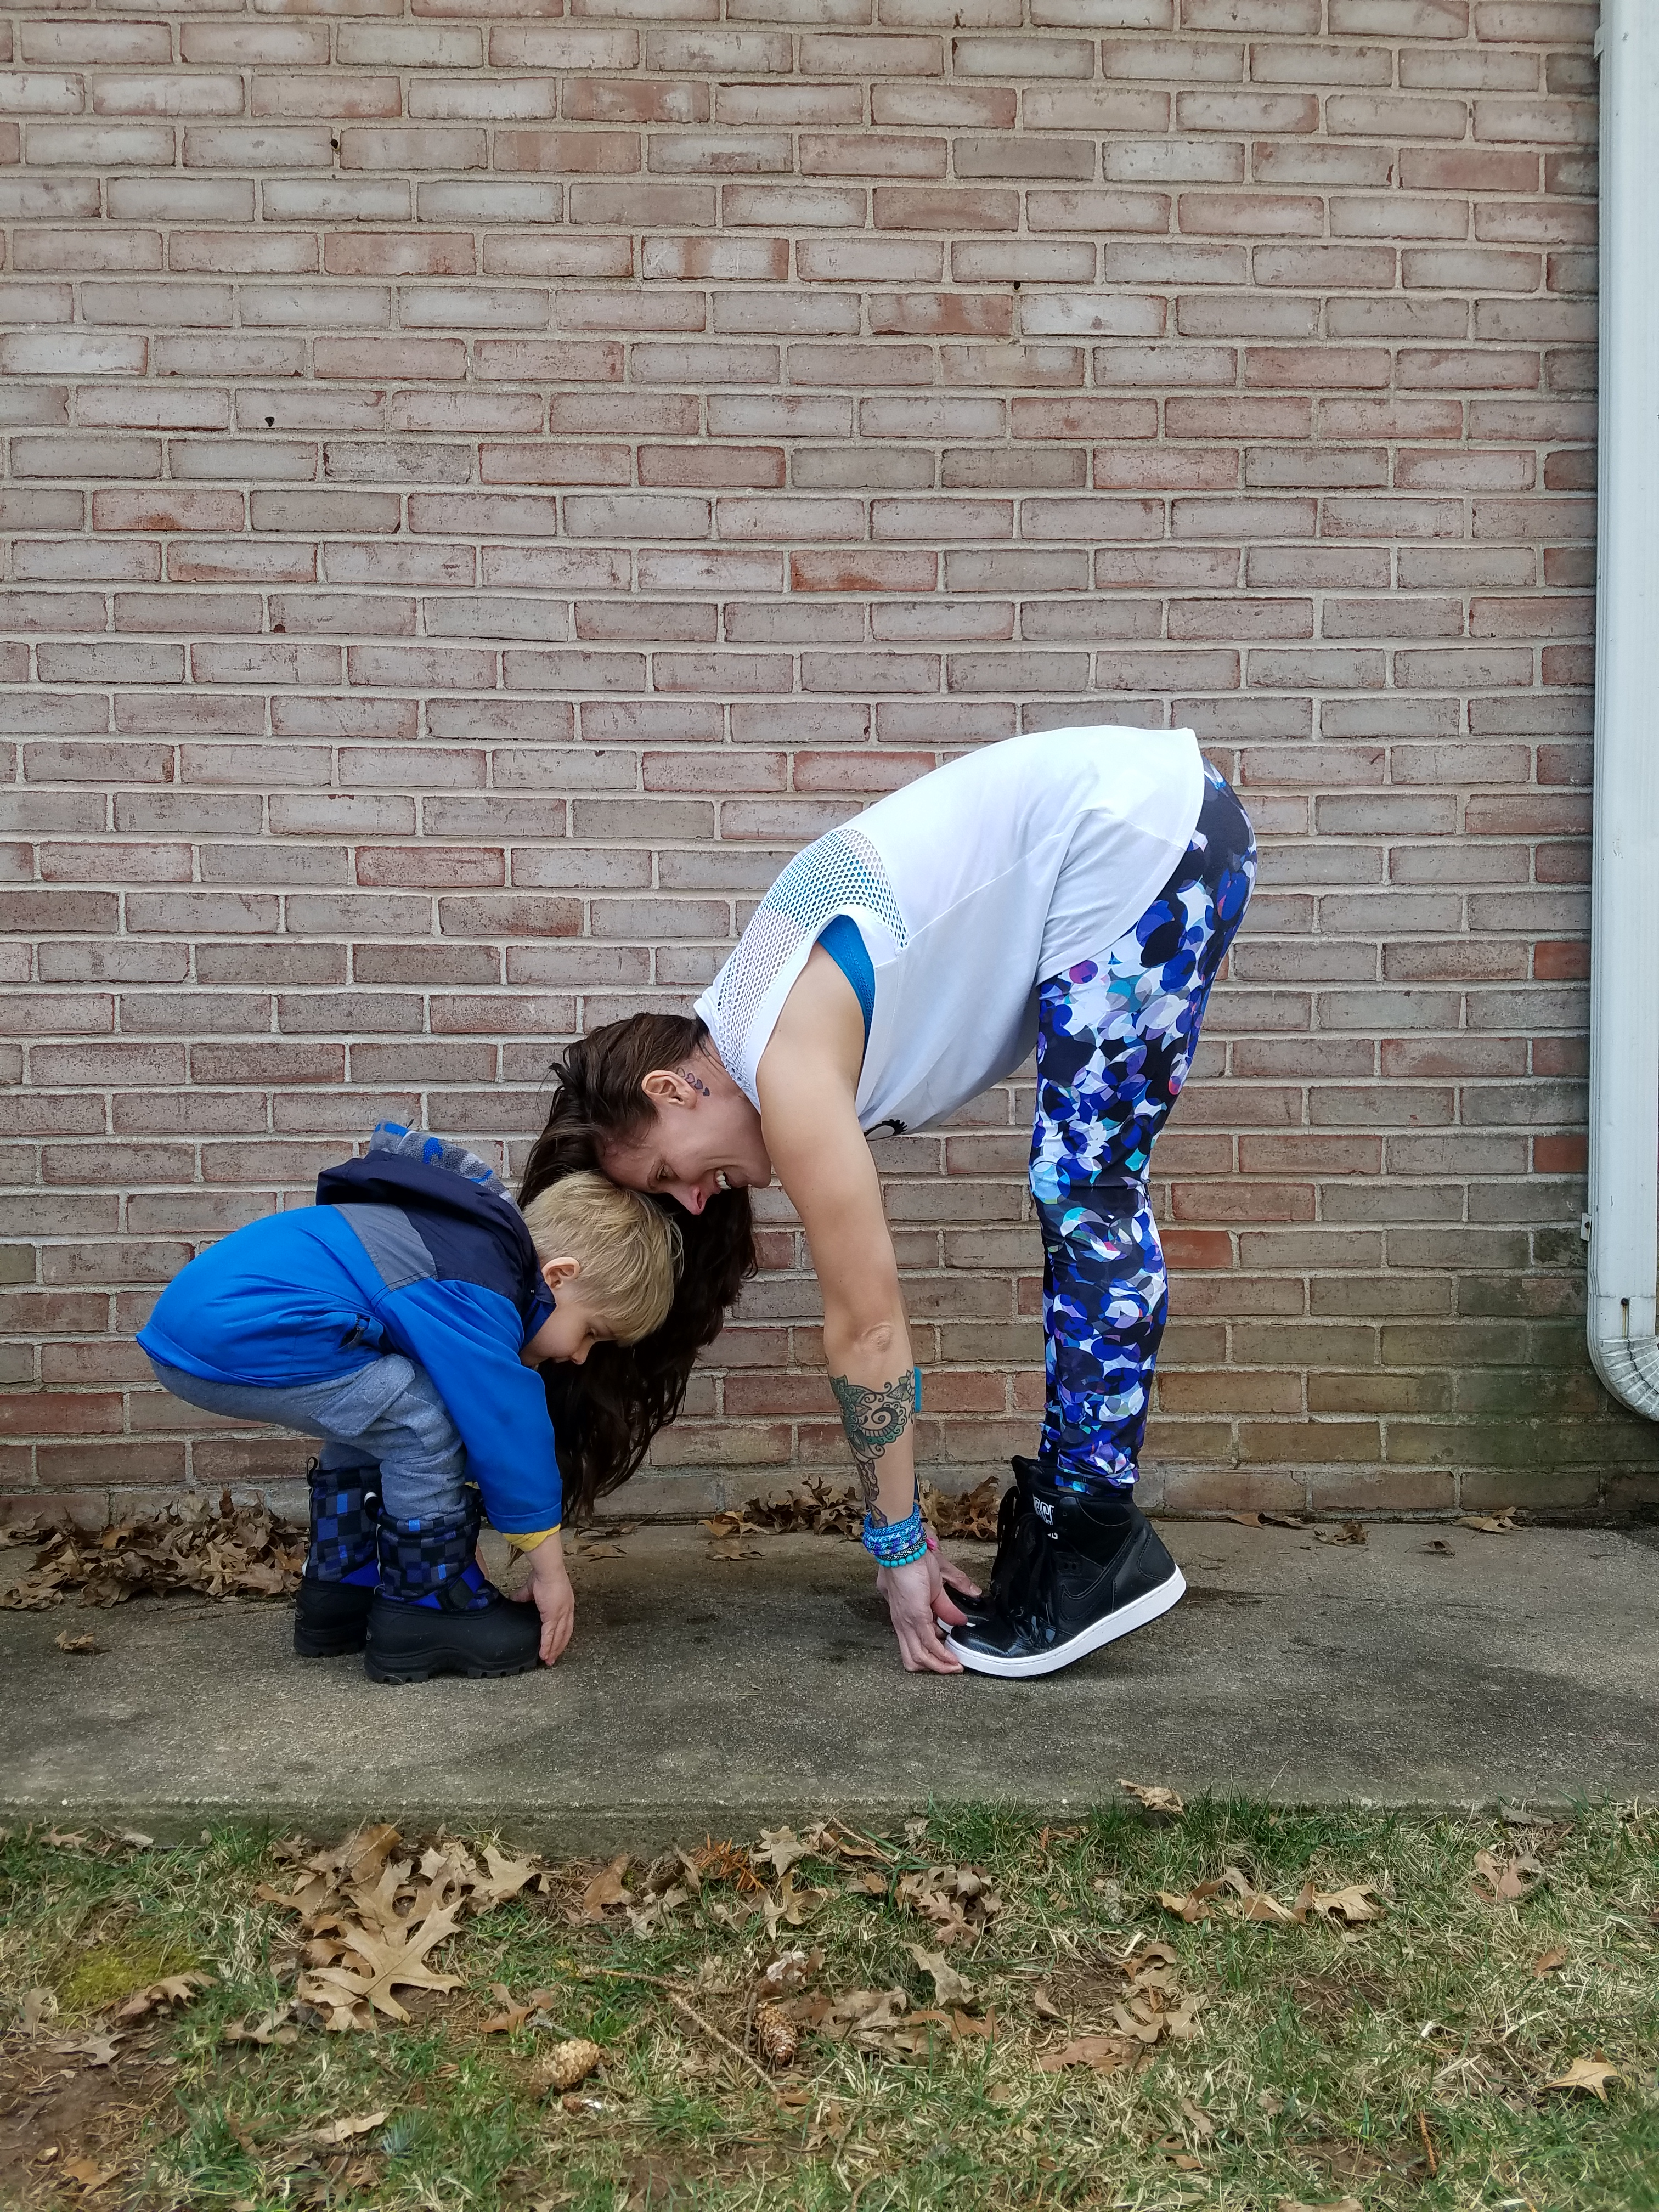 Stretching with my son